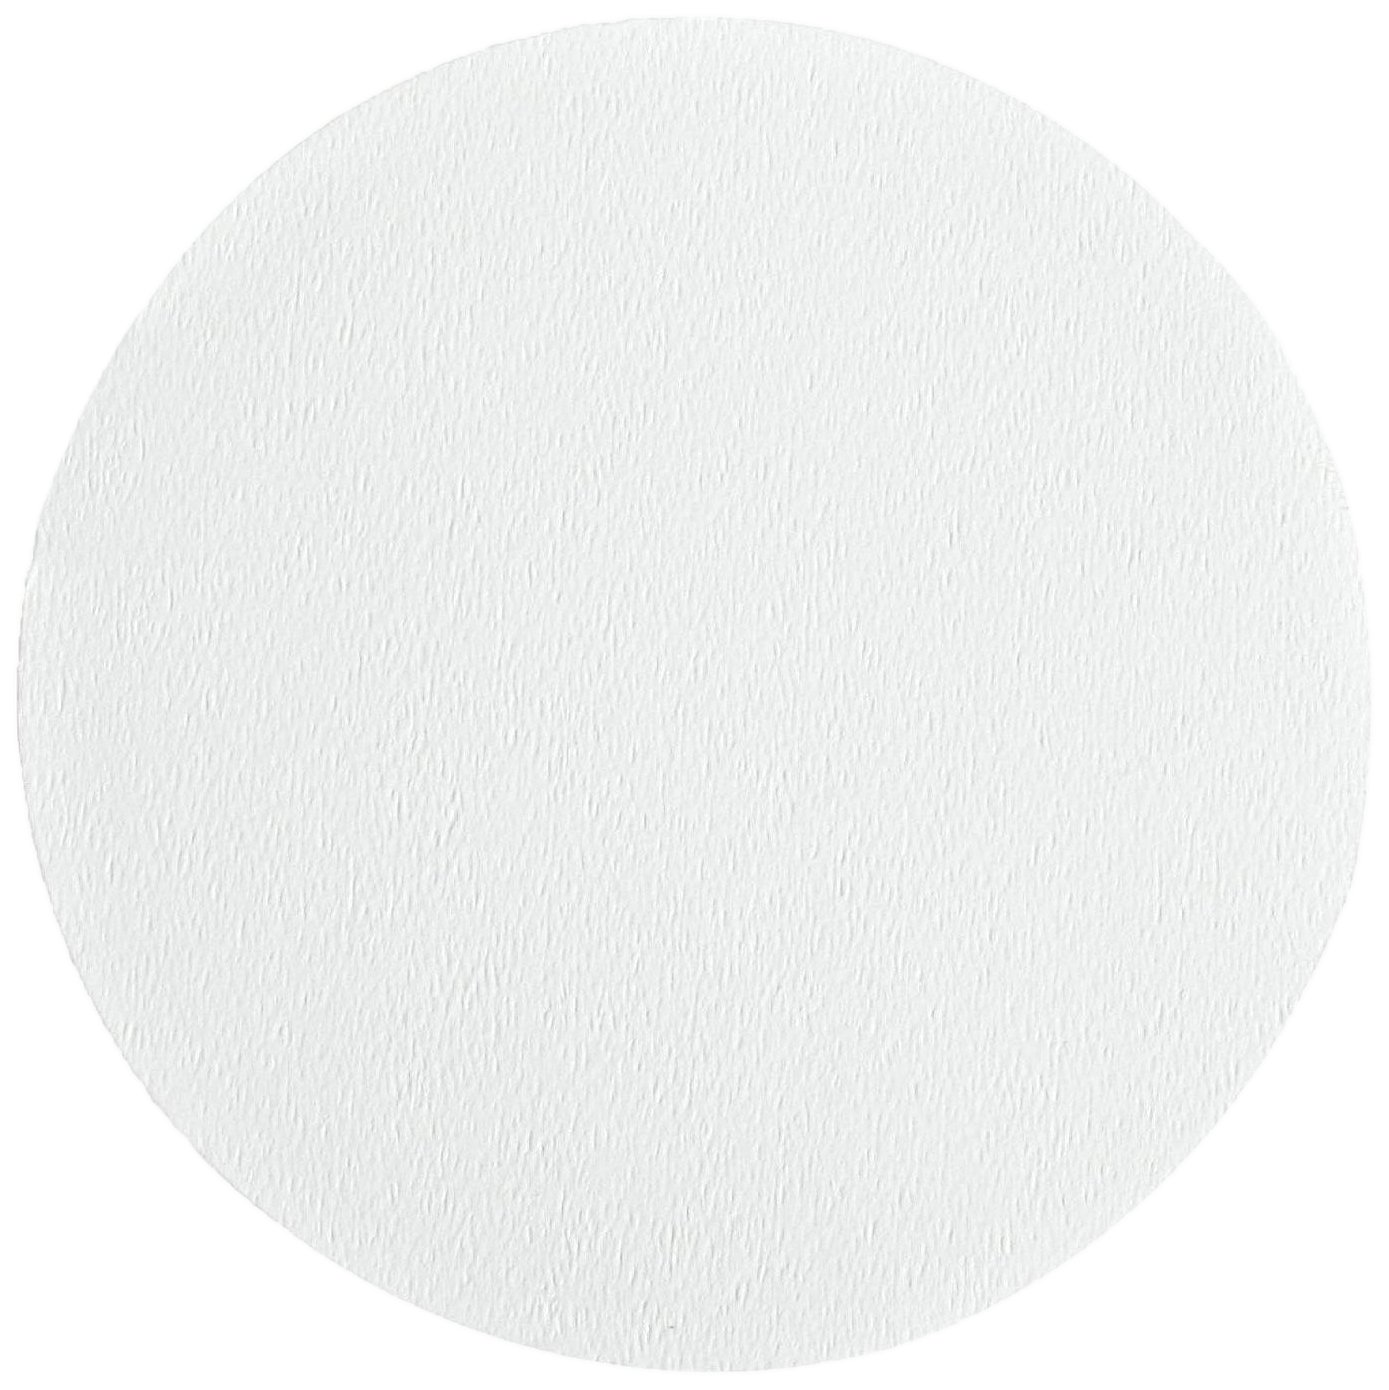 7cm Diameter Ahlstrom 1510-0700 Borosilicate Glass Microfiber Filter Paper 0.7 Micron Grade 151 Slow Flow Box of 100